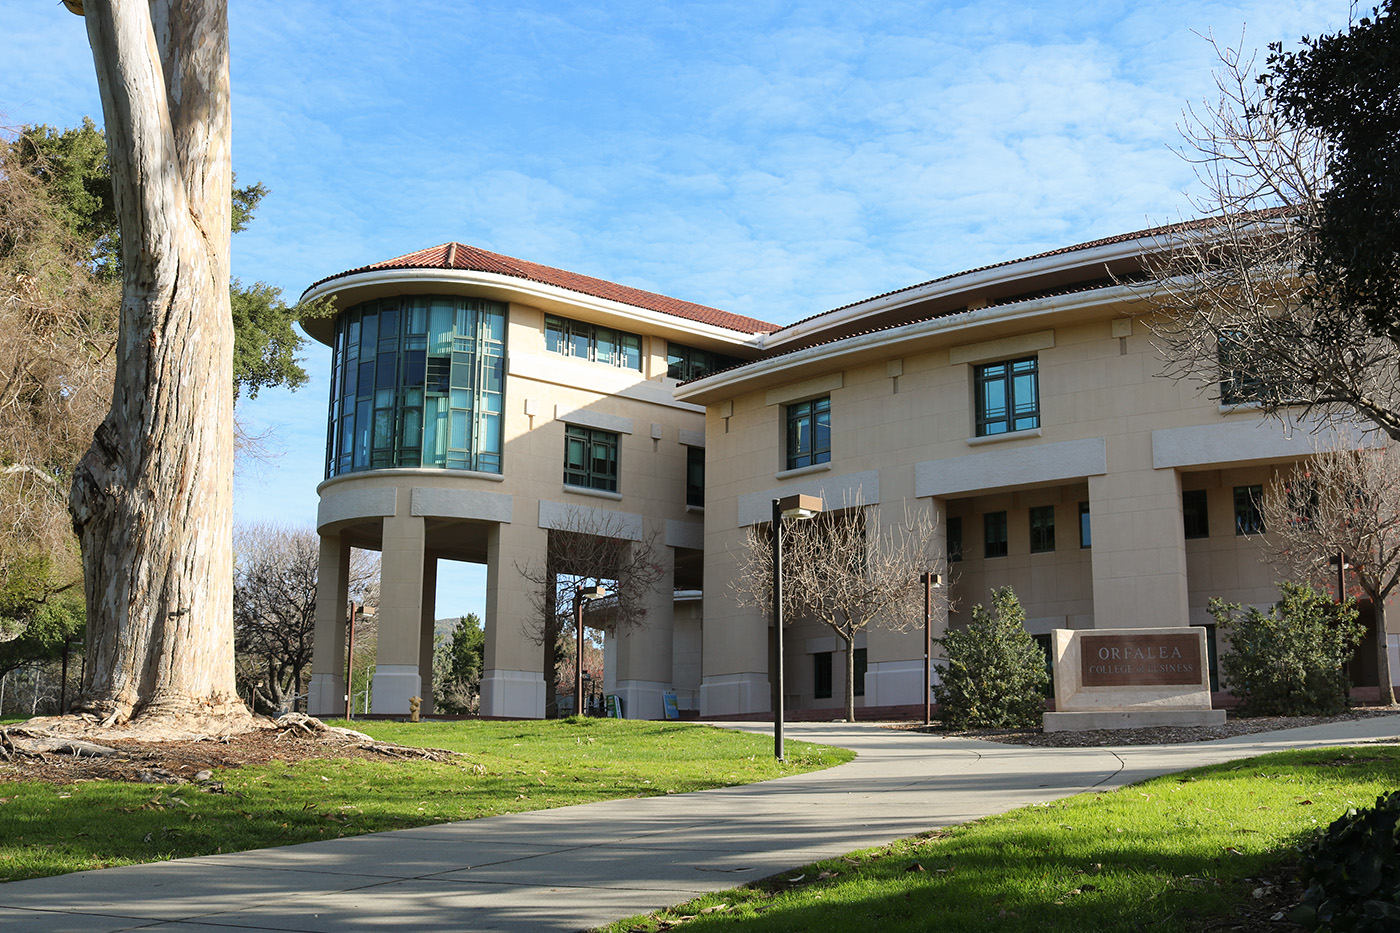 Orfela College of Business